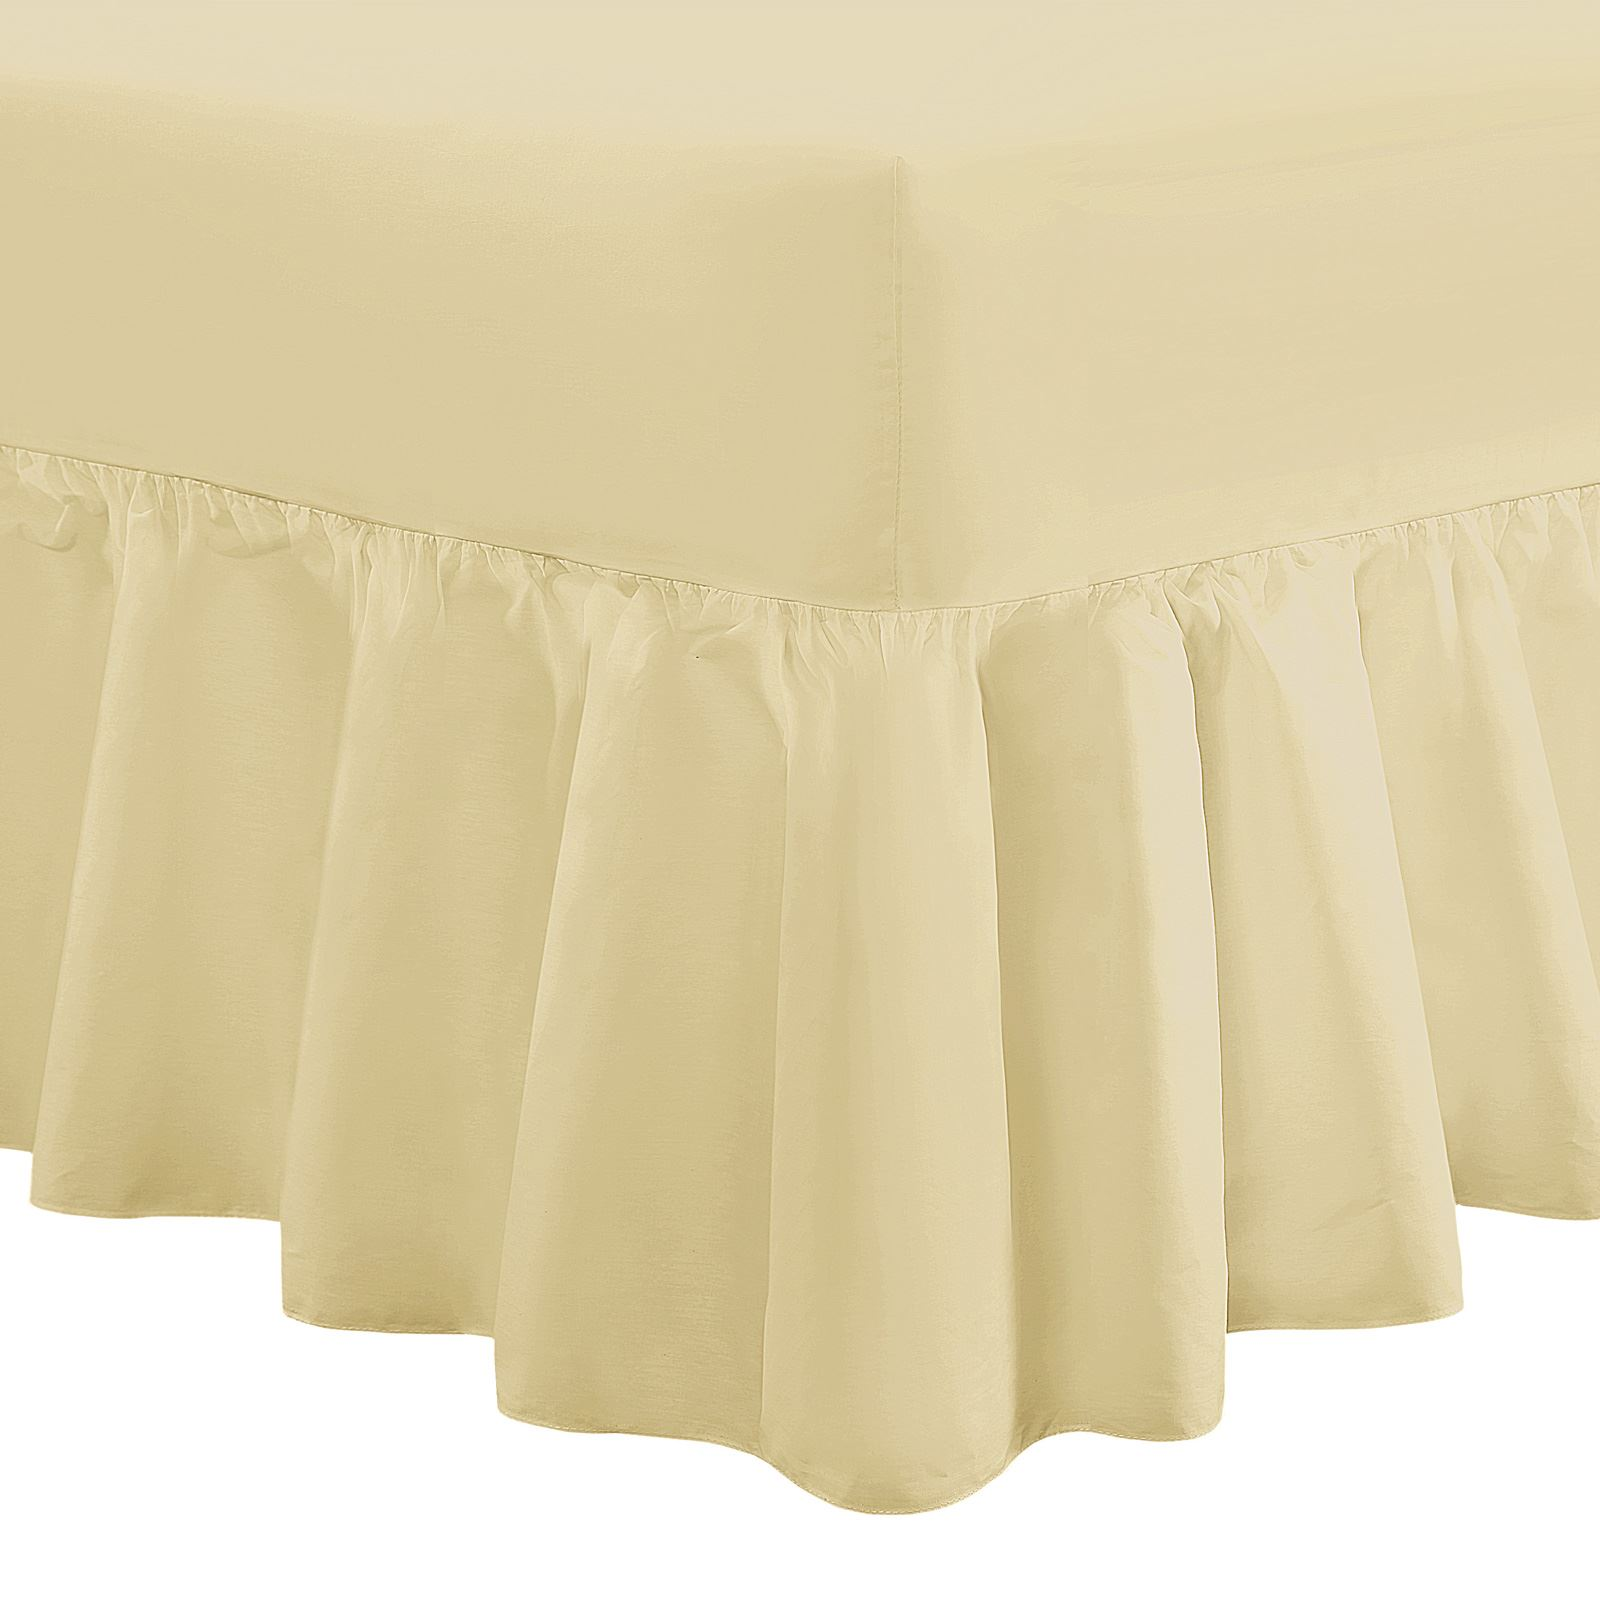 100/% Cotton Percale Fitted Sheet Flat Sheet Frilled Valance Sheet 200 Thread